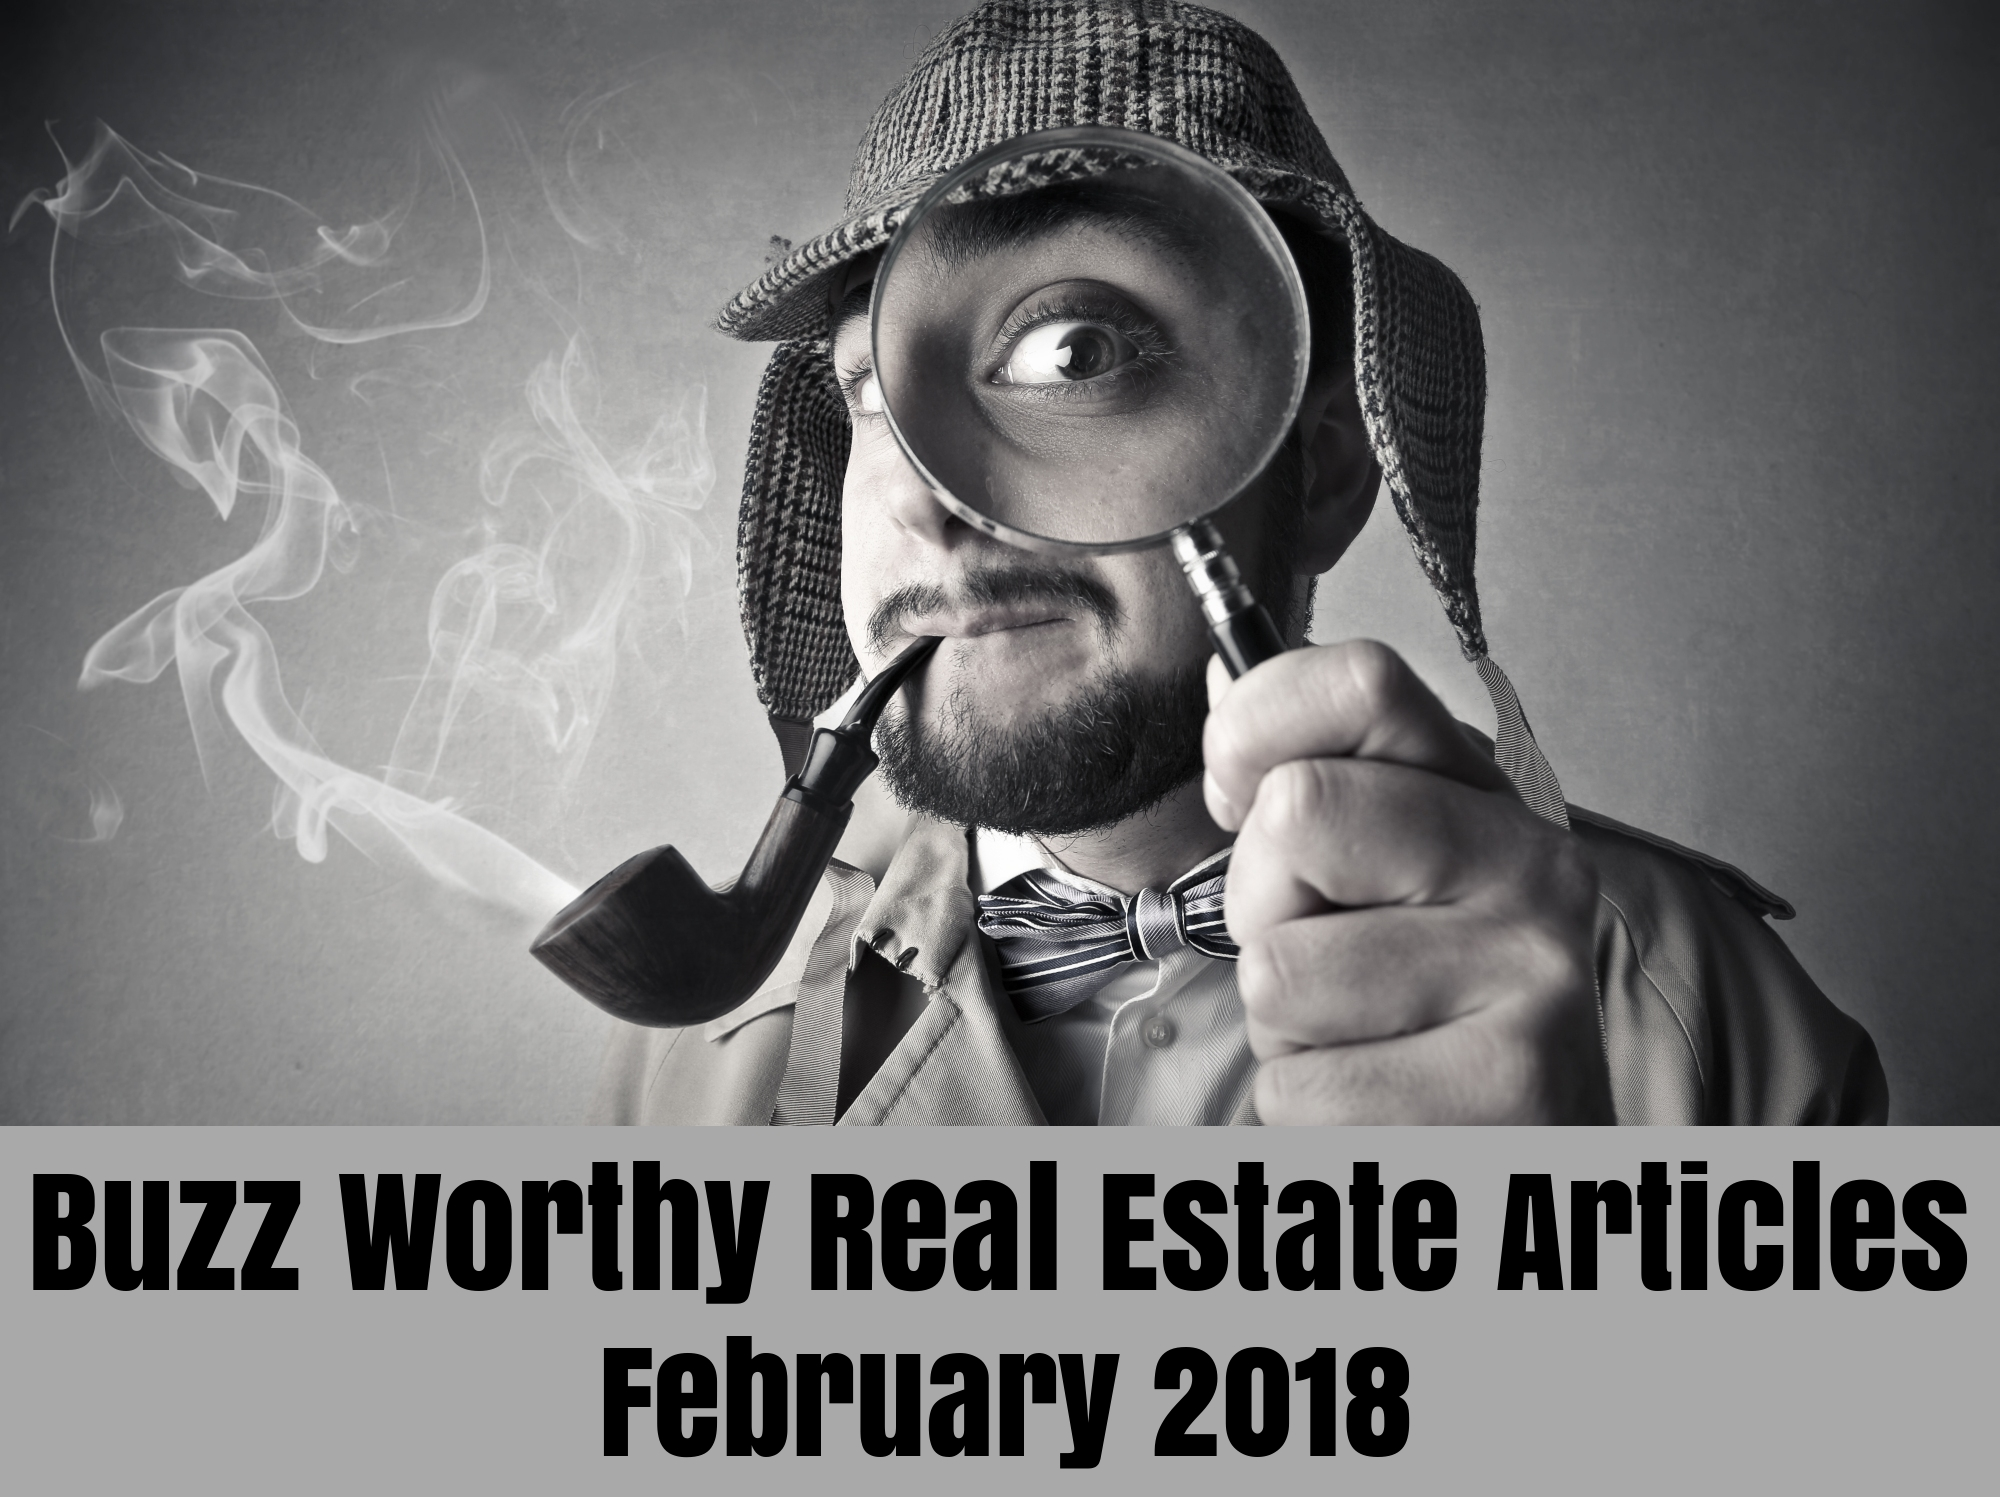 Buzz Worthy Real Estate Articles - Feb 2018